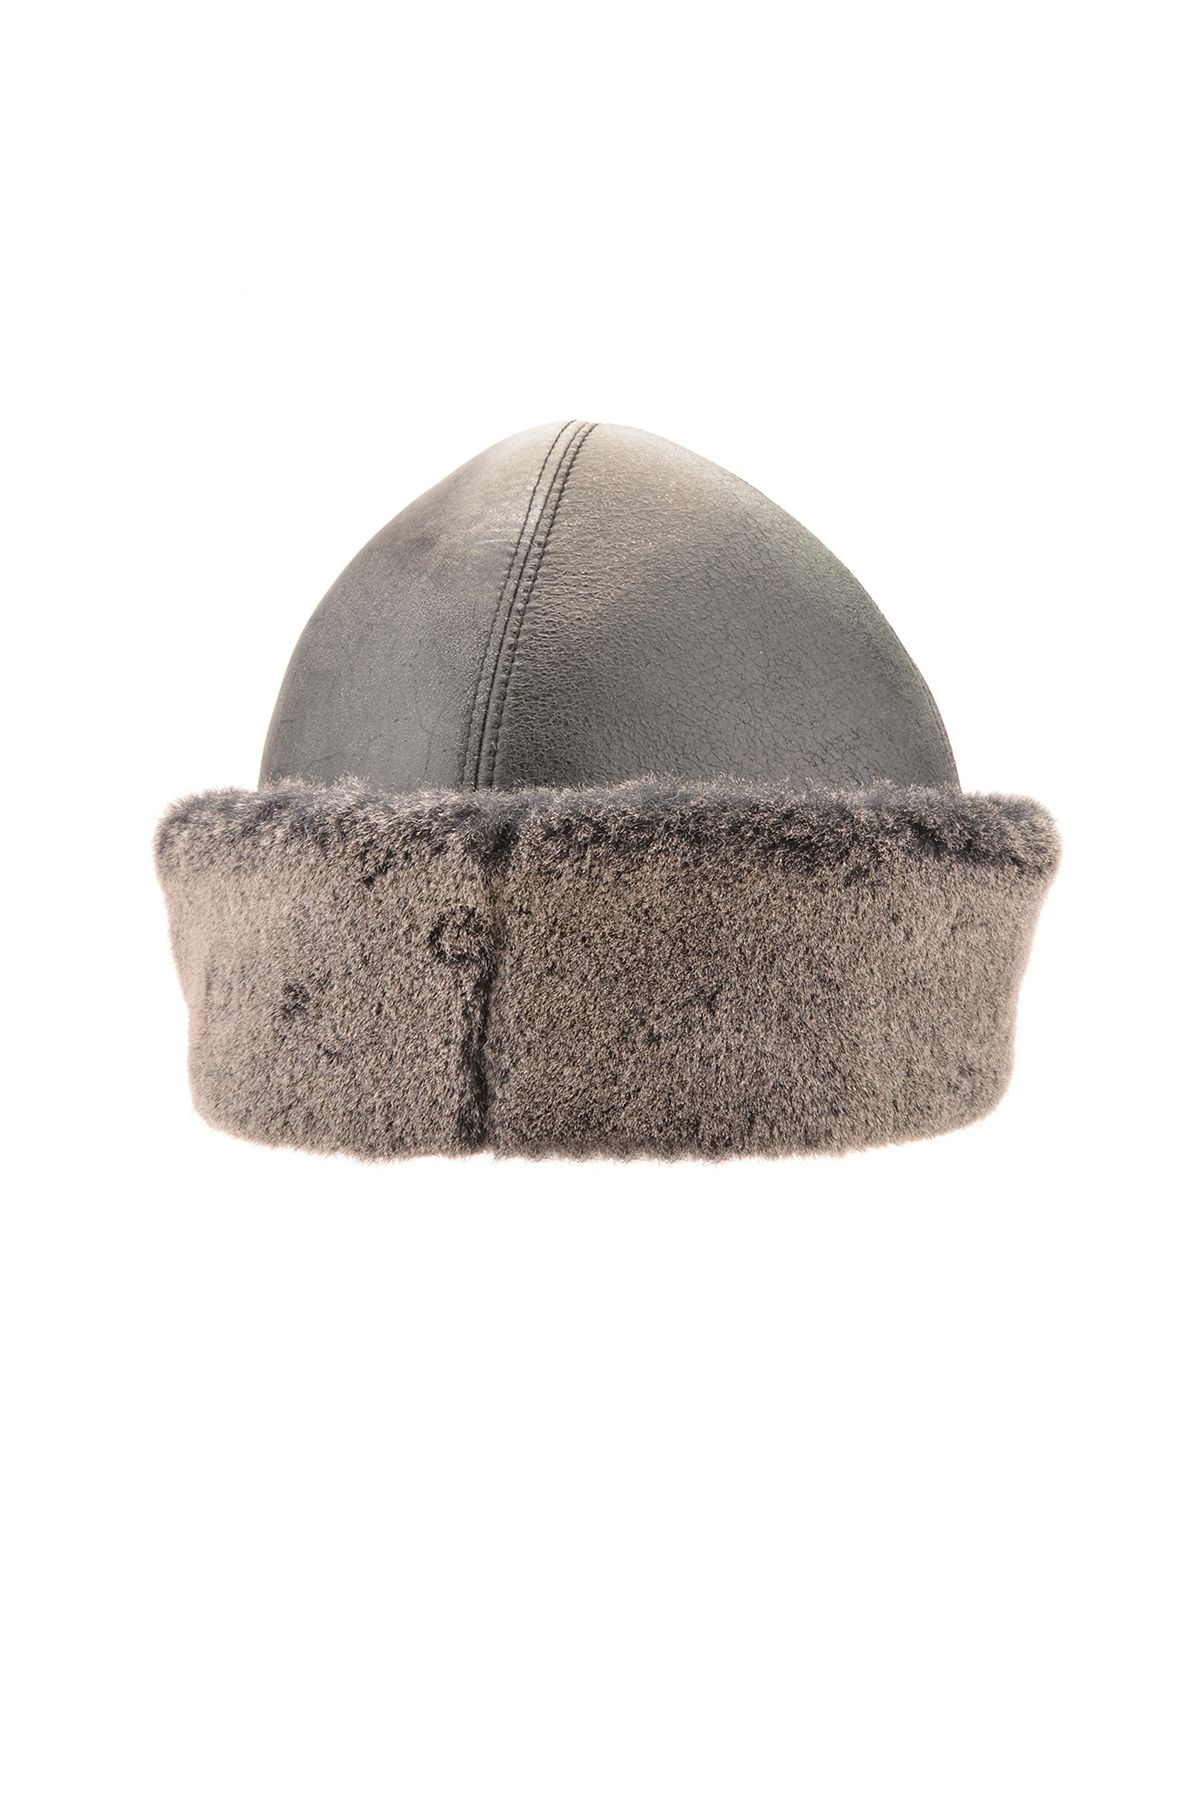 Pegia Ottoman Hat From Vintage Leather And Genuine Fur Gray